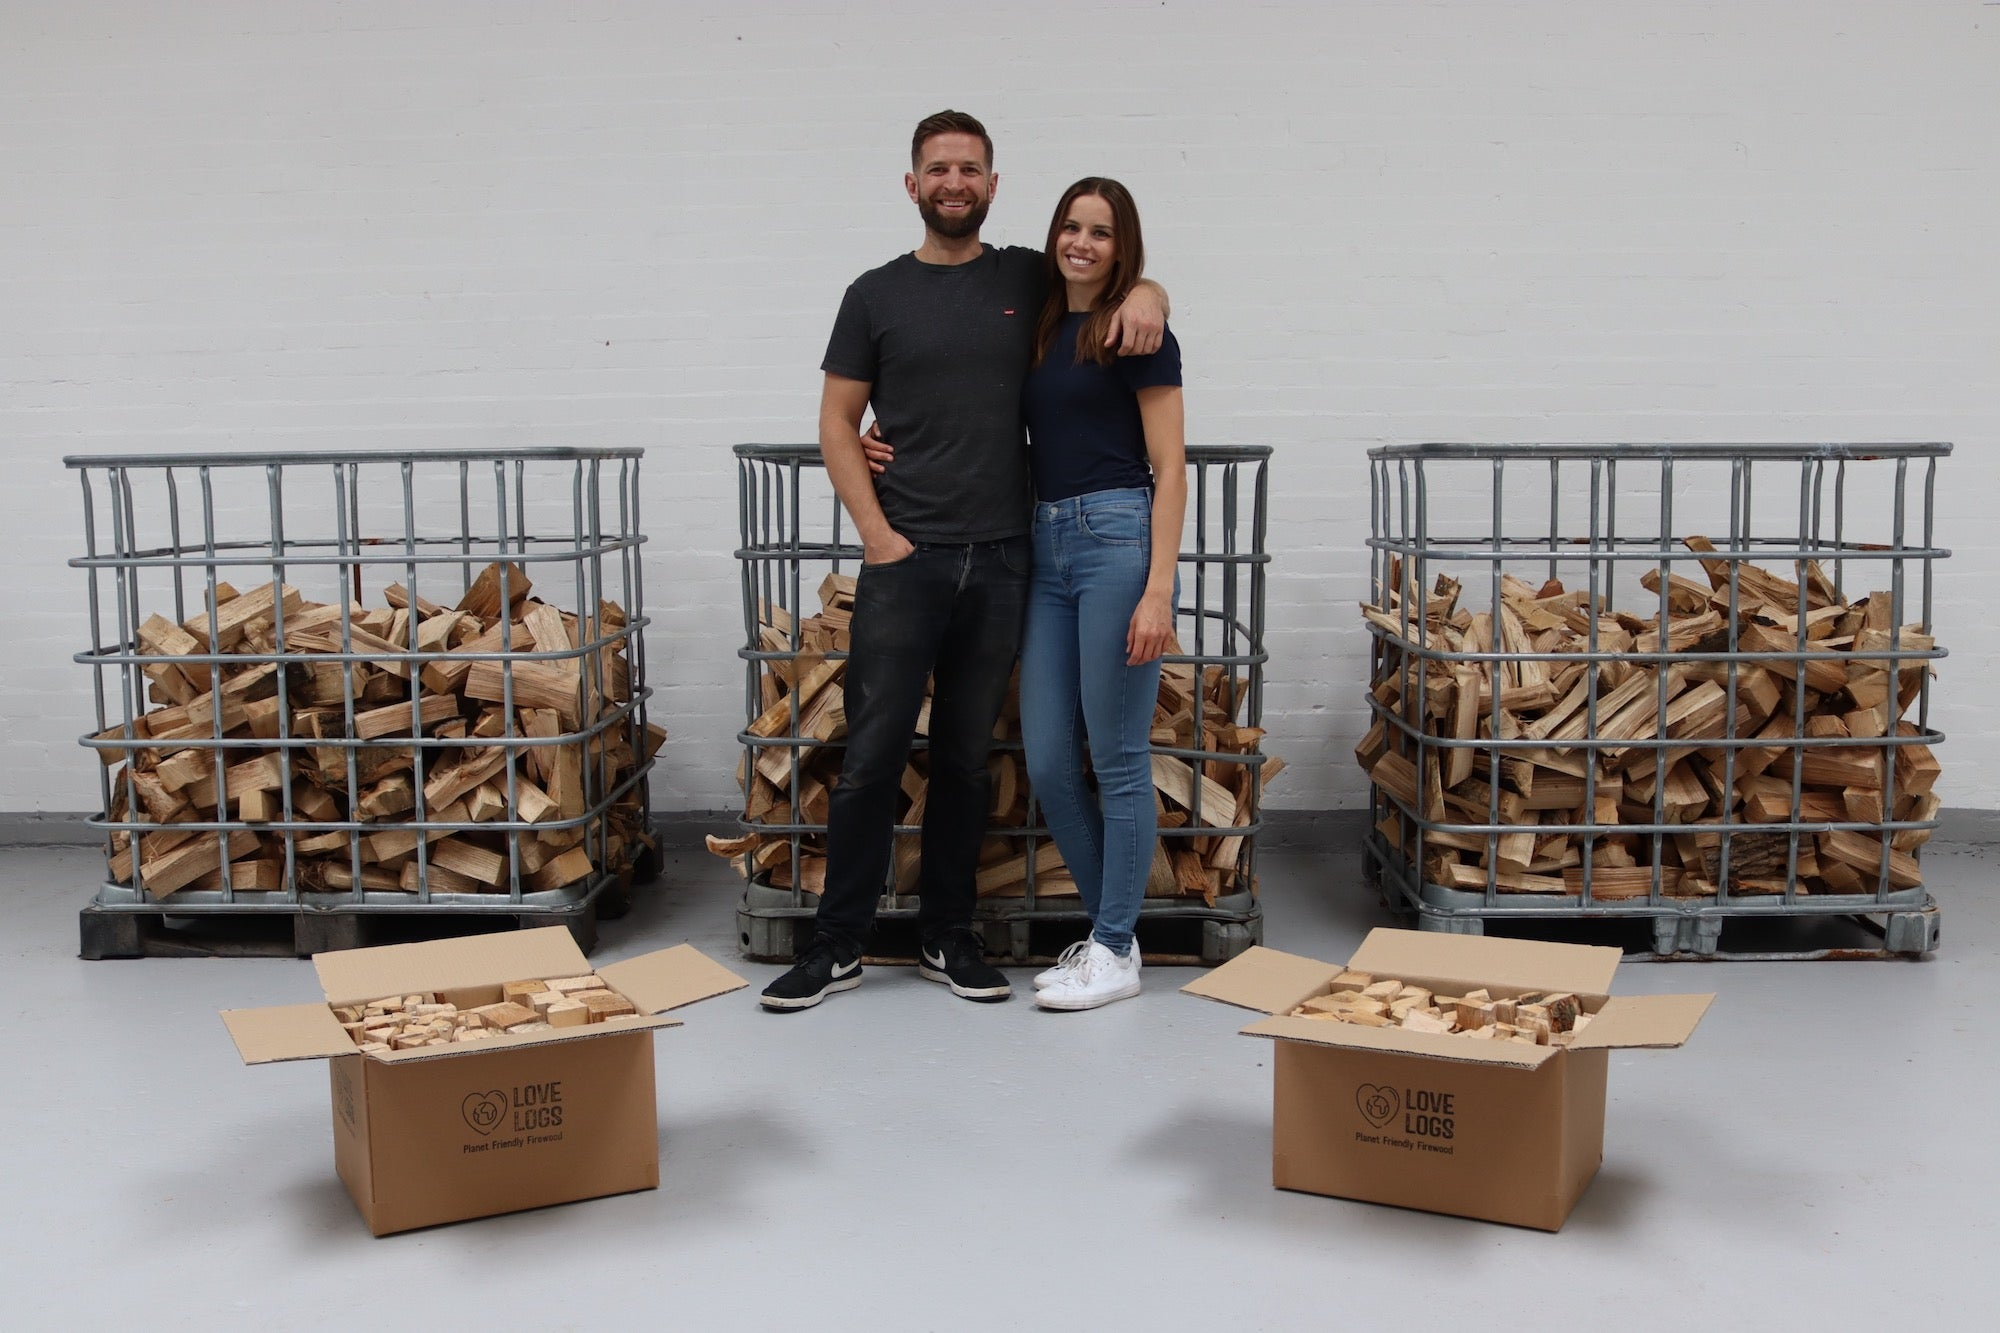 Paul and Heather in the warehouse after launching Love Logs Planet Friendly Firewood